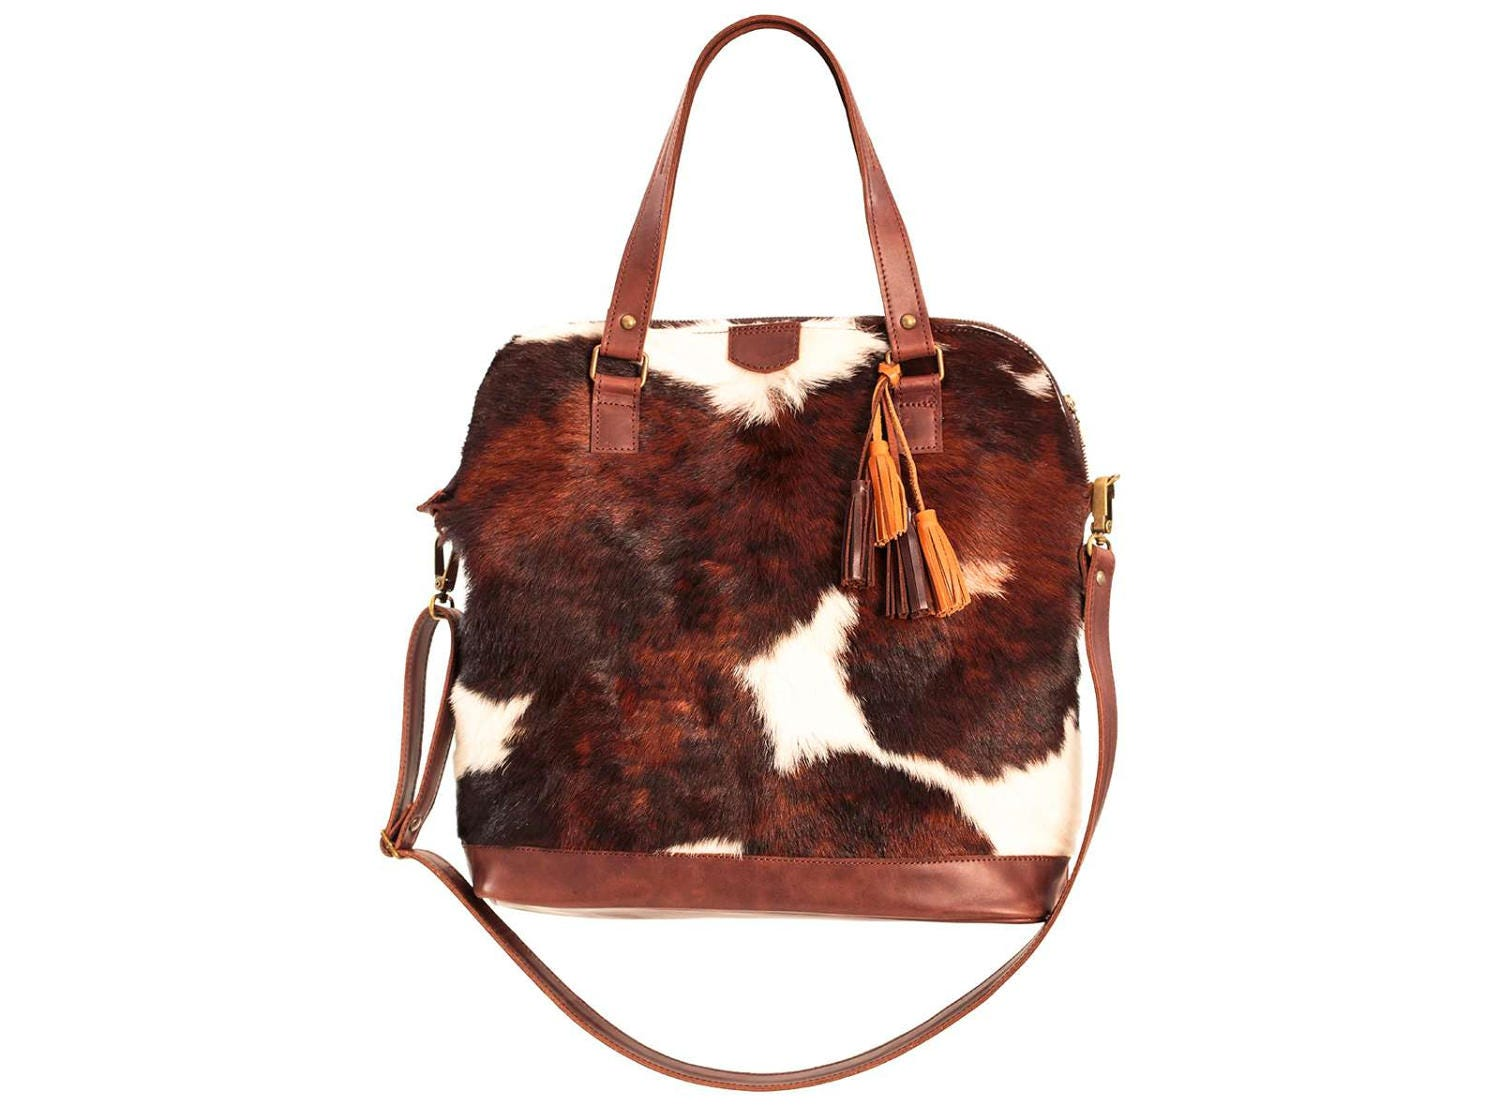 Cowhide Bag Cow Hide Purse Brown Leather Bag Cow Leather